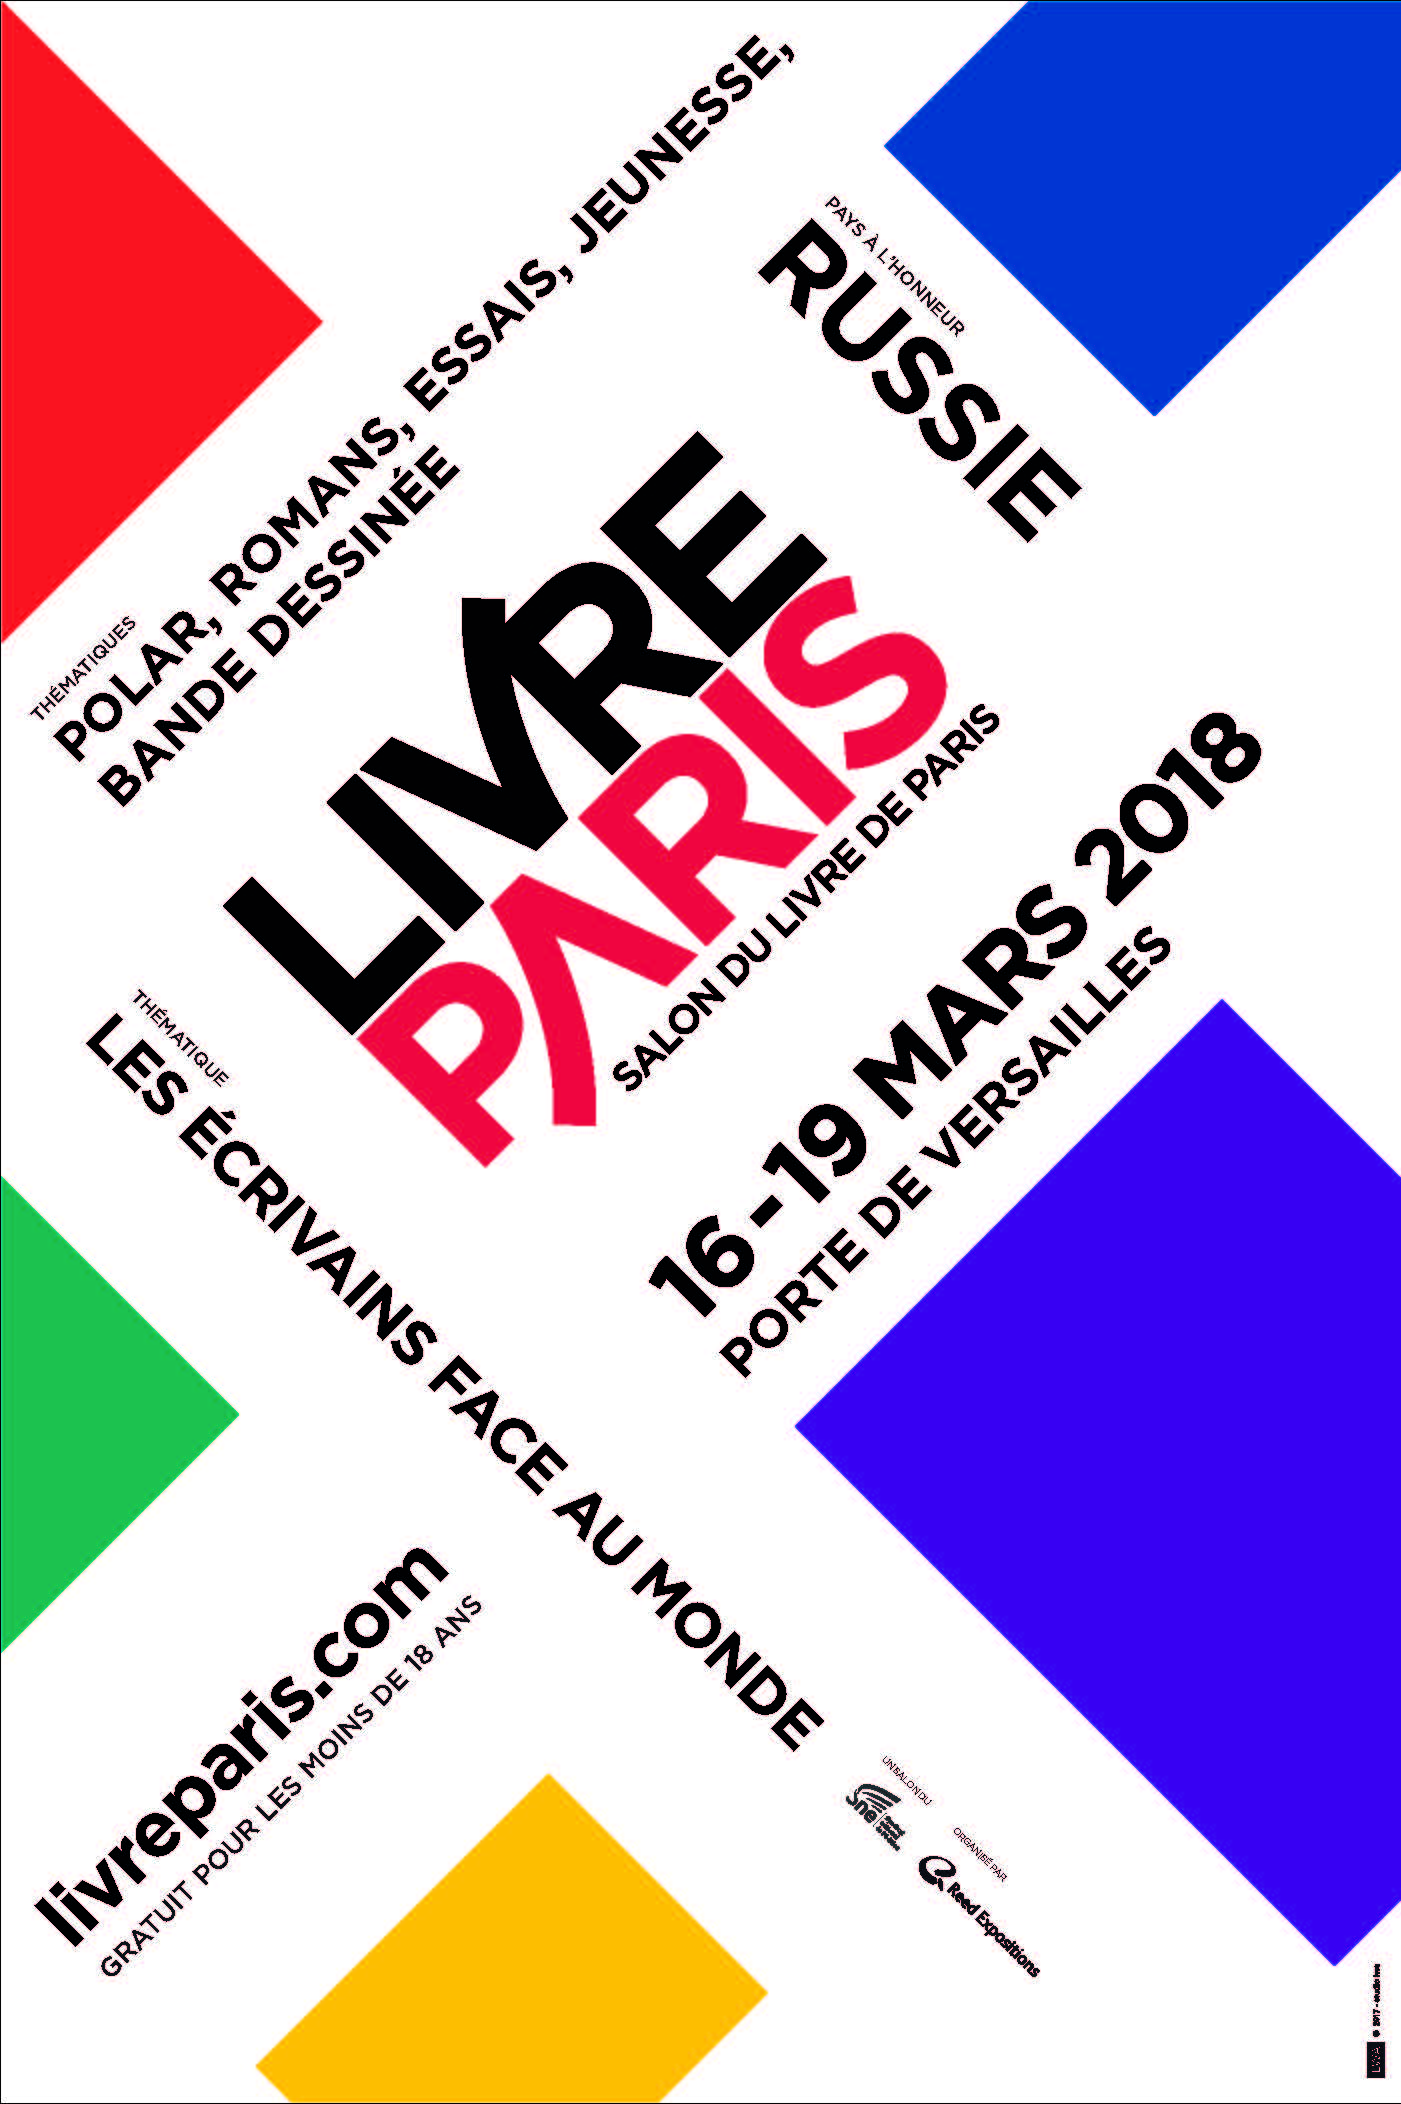 Les lettres russes l 39 honneur du salon livre paris 2018 for Salon 2018 france